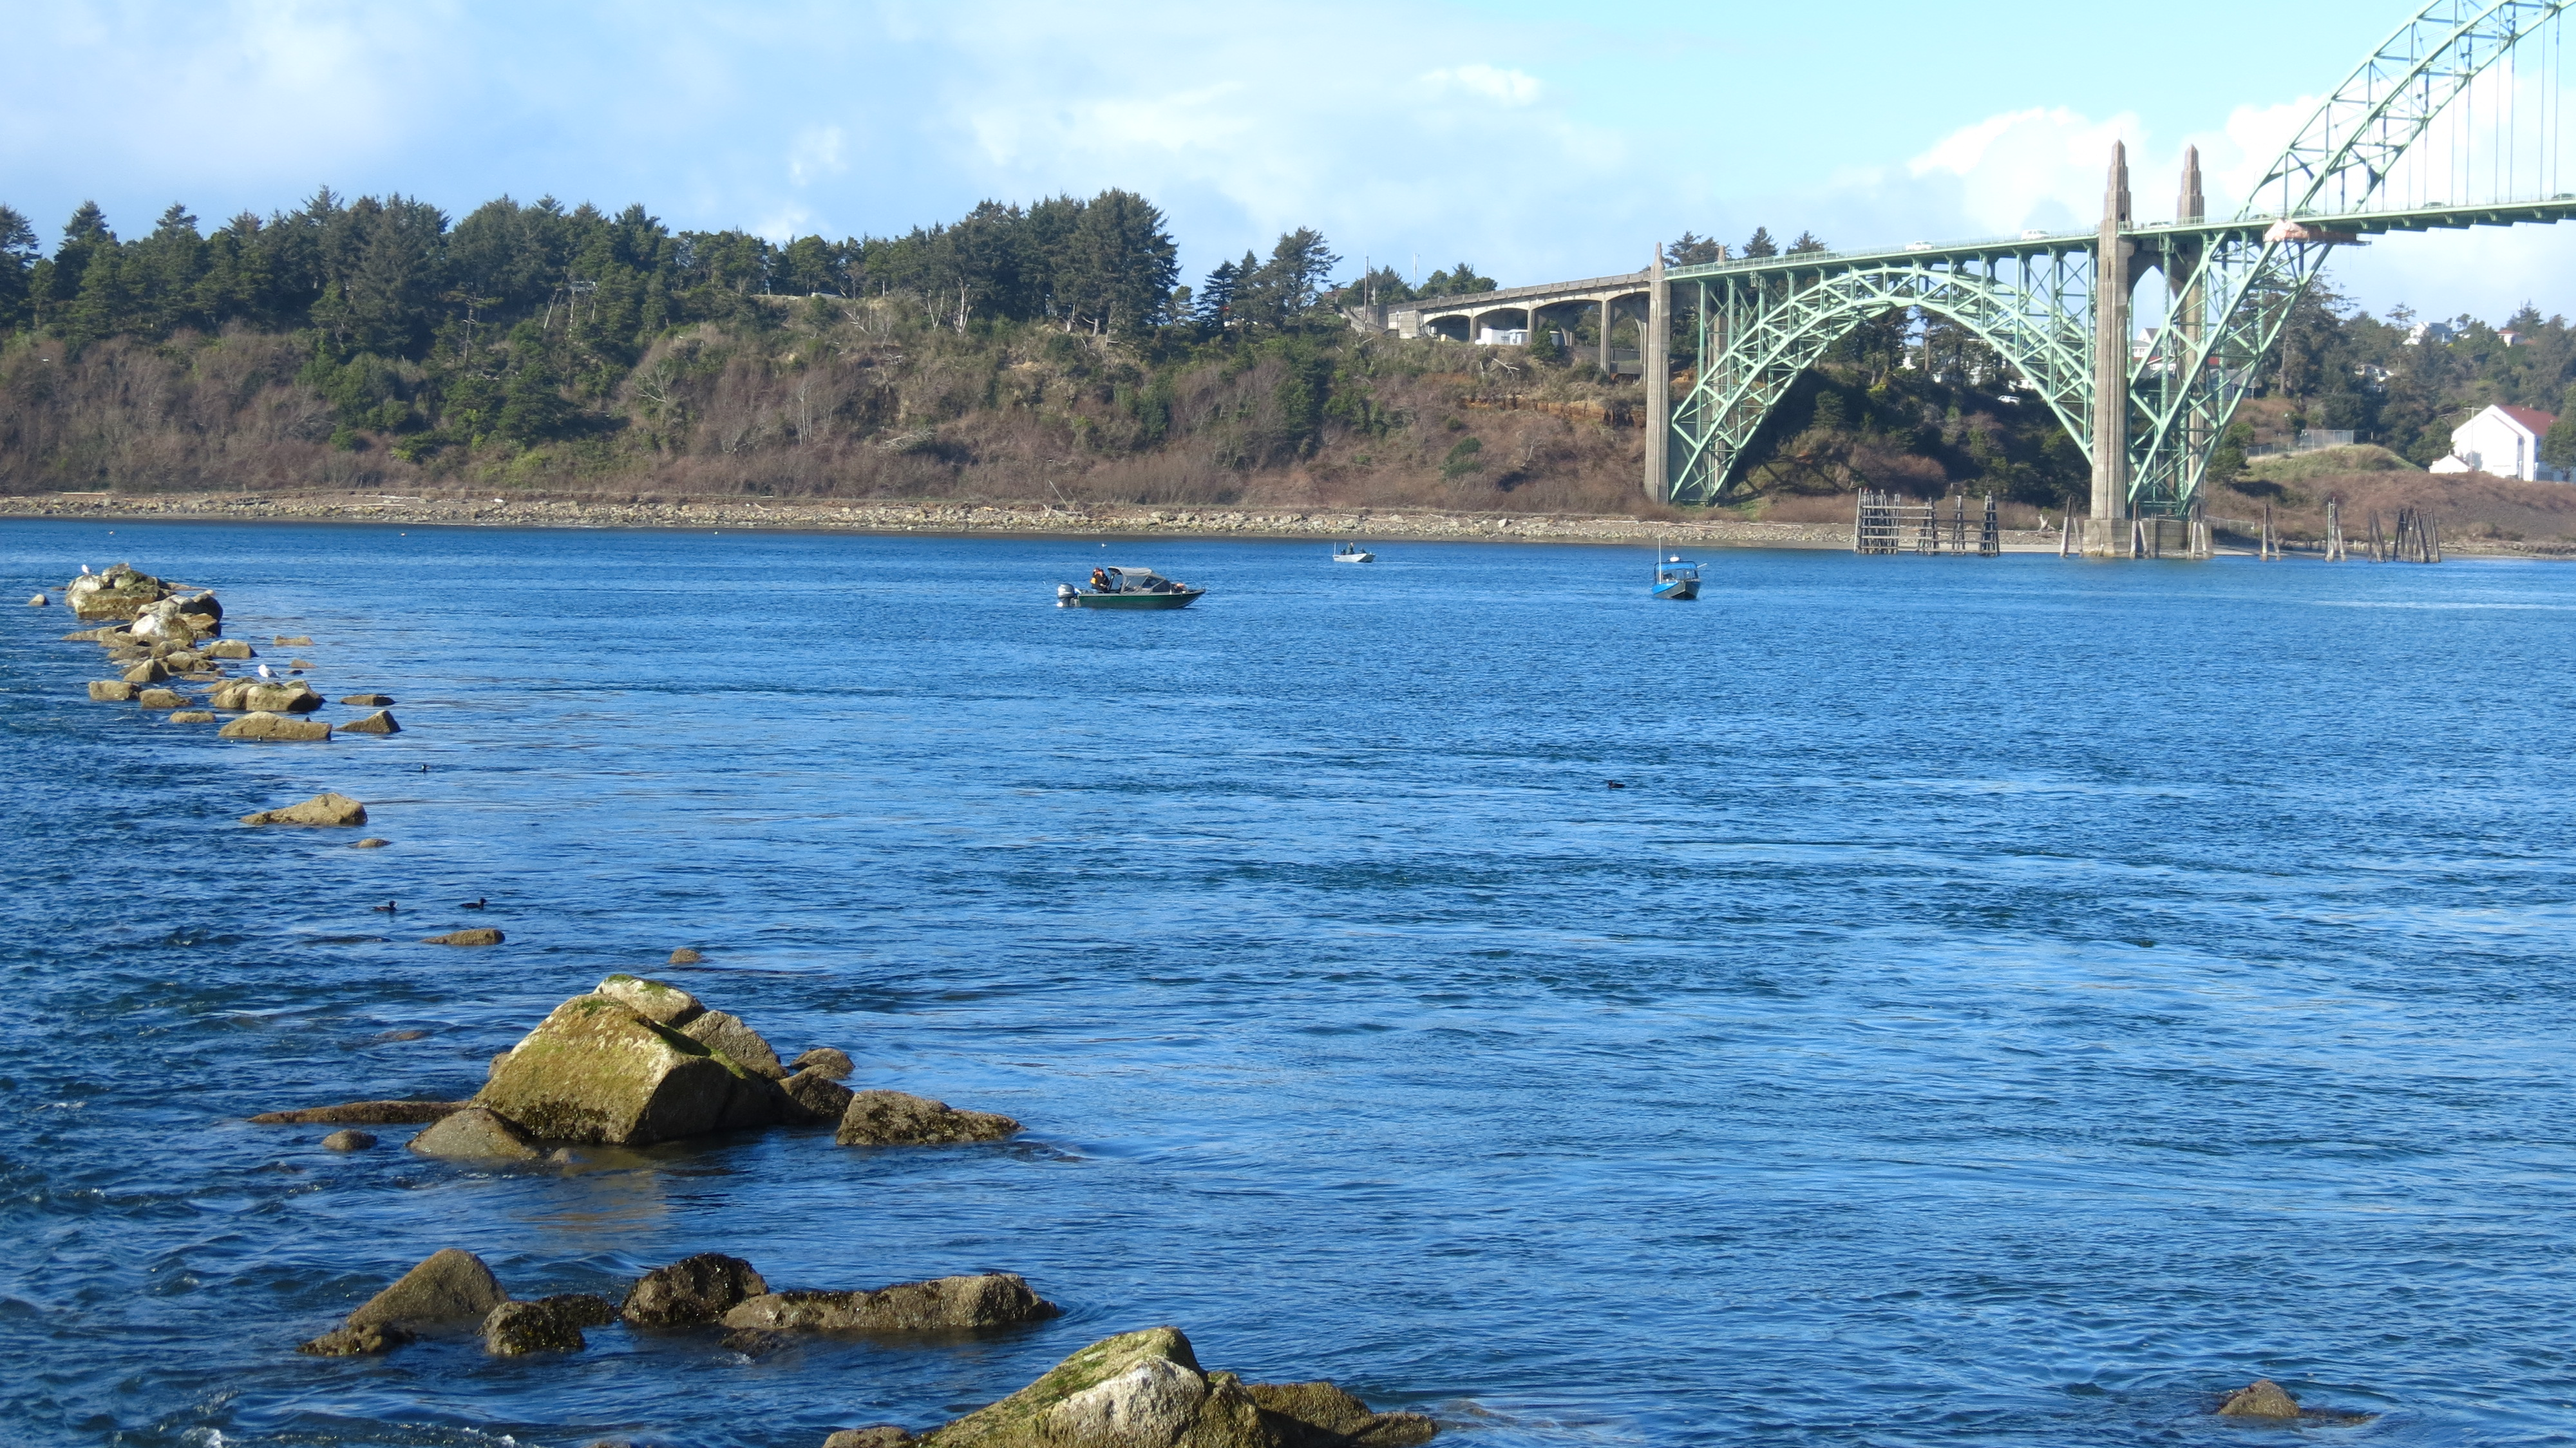 Yaquina bay picnic pamperingcampers blog for Jetty fishing oregon